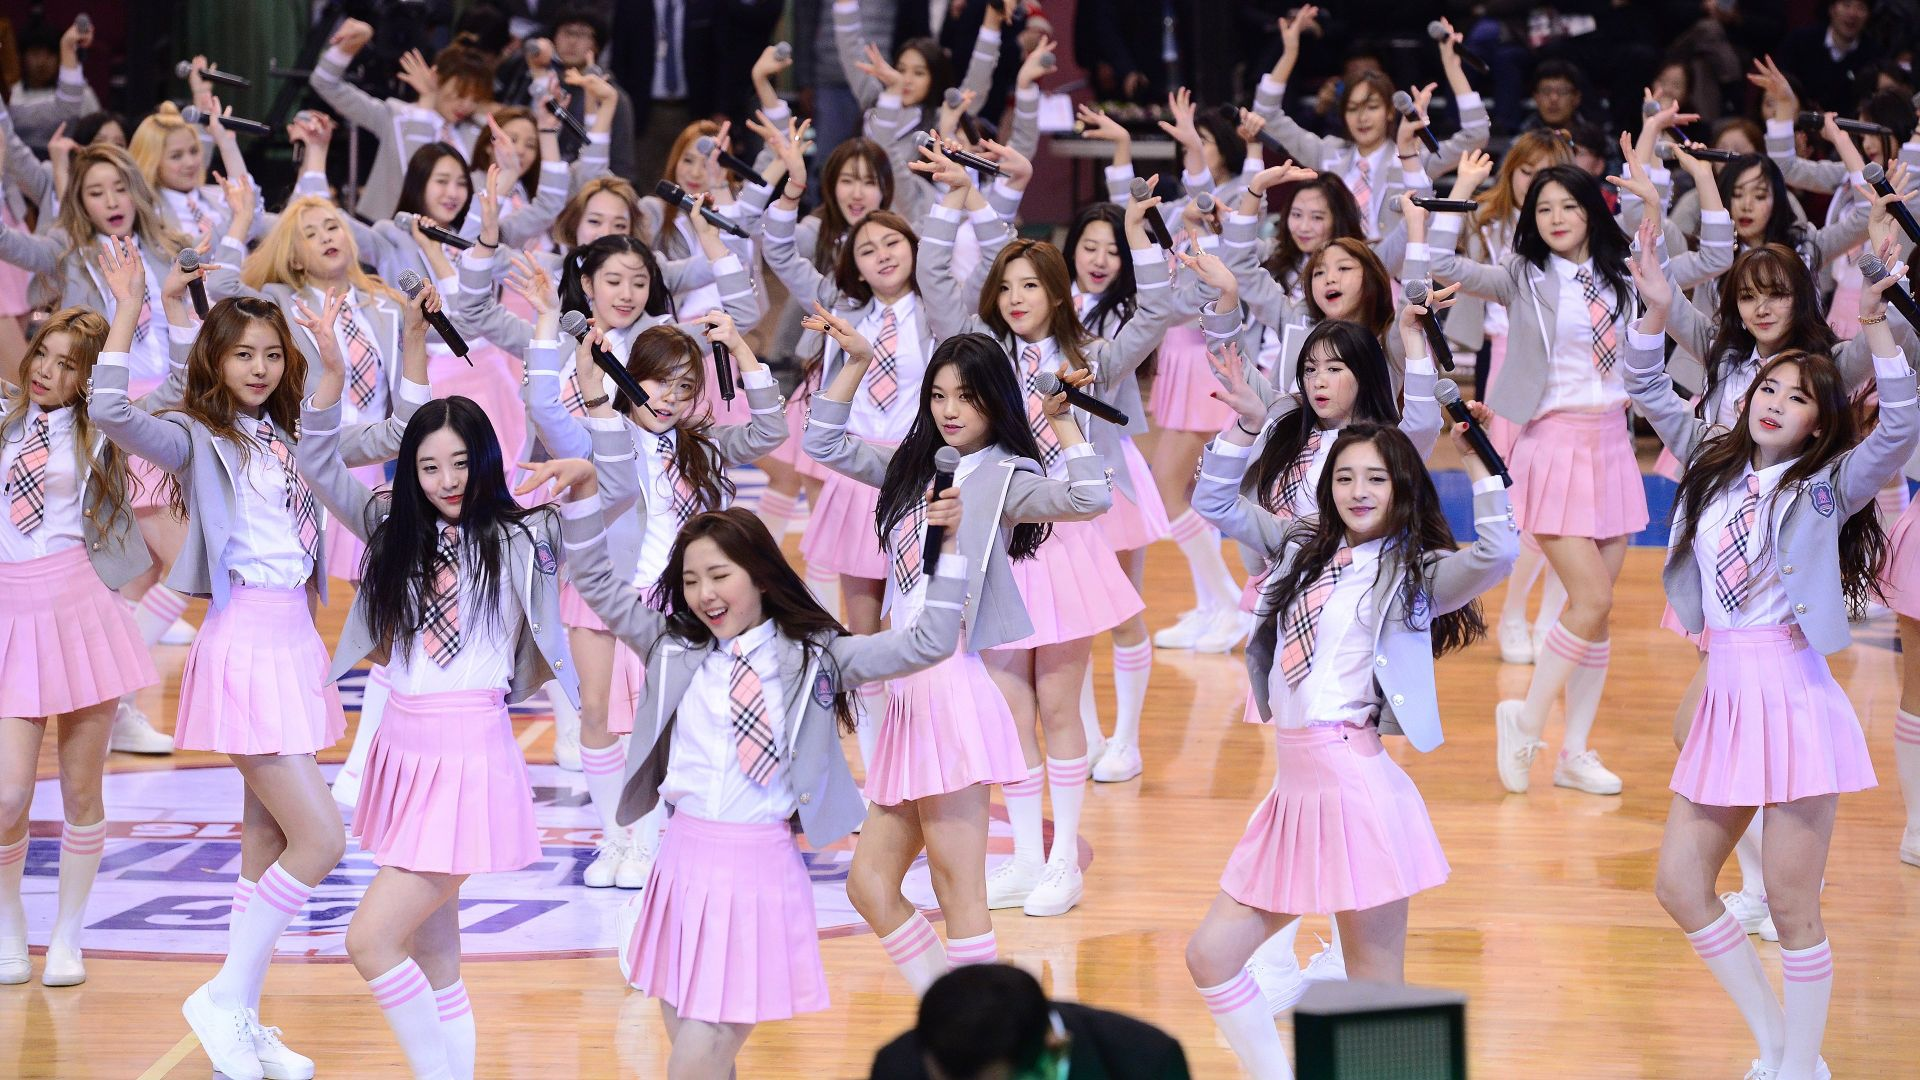 Produce 101 Season 1: Where To Watch Every Episode | Reelgood